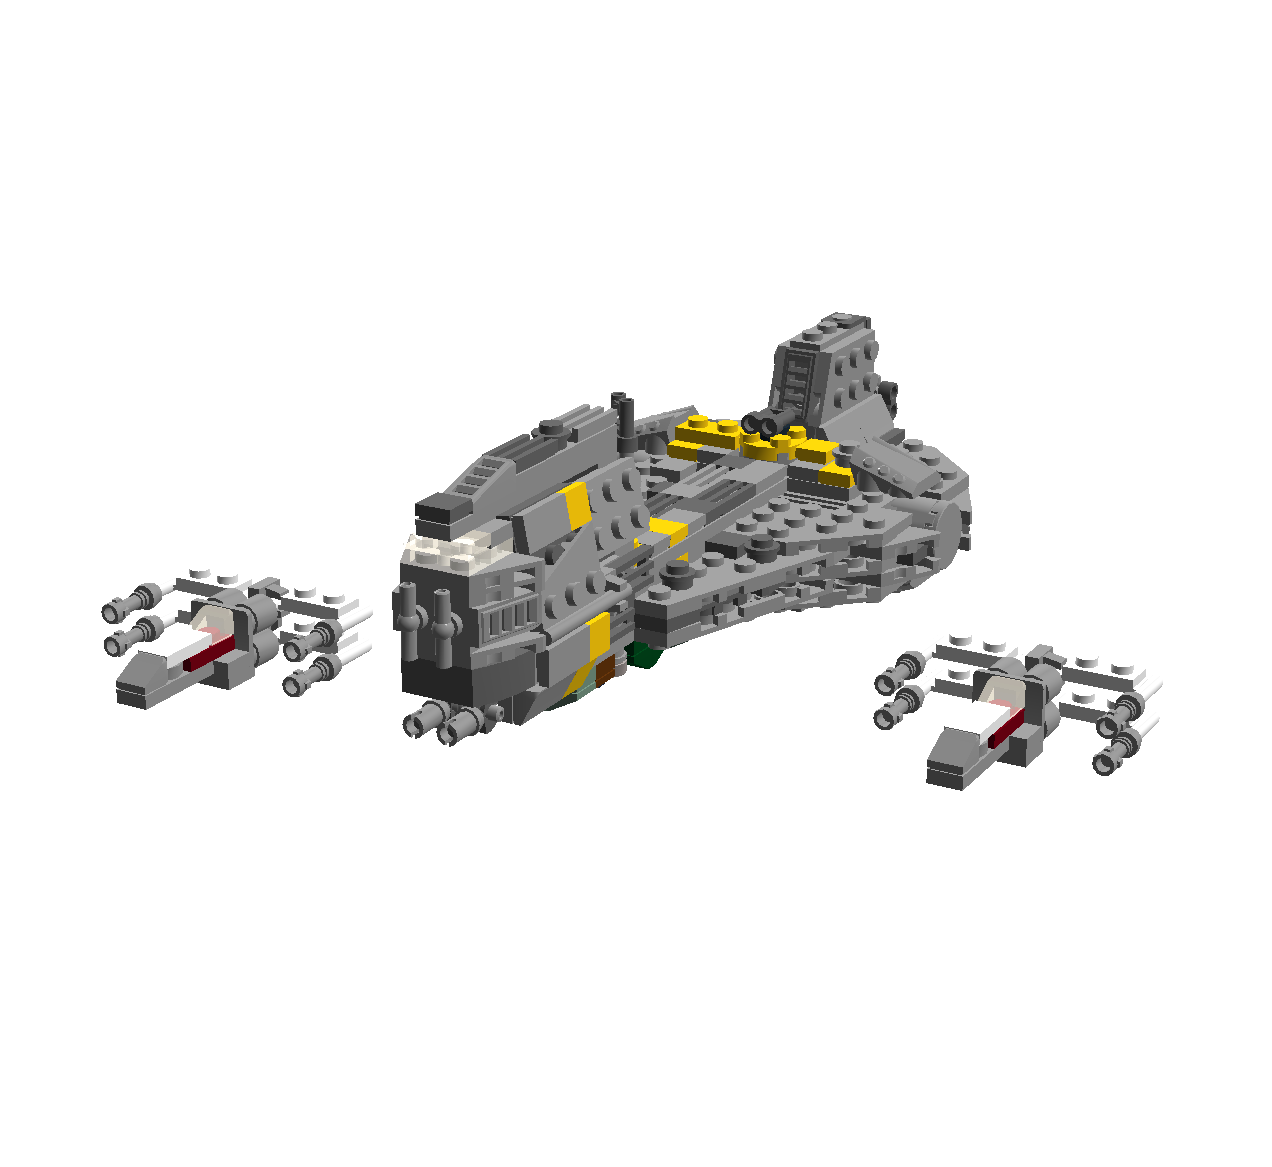 cargo_freighter_with_x-wings.png